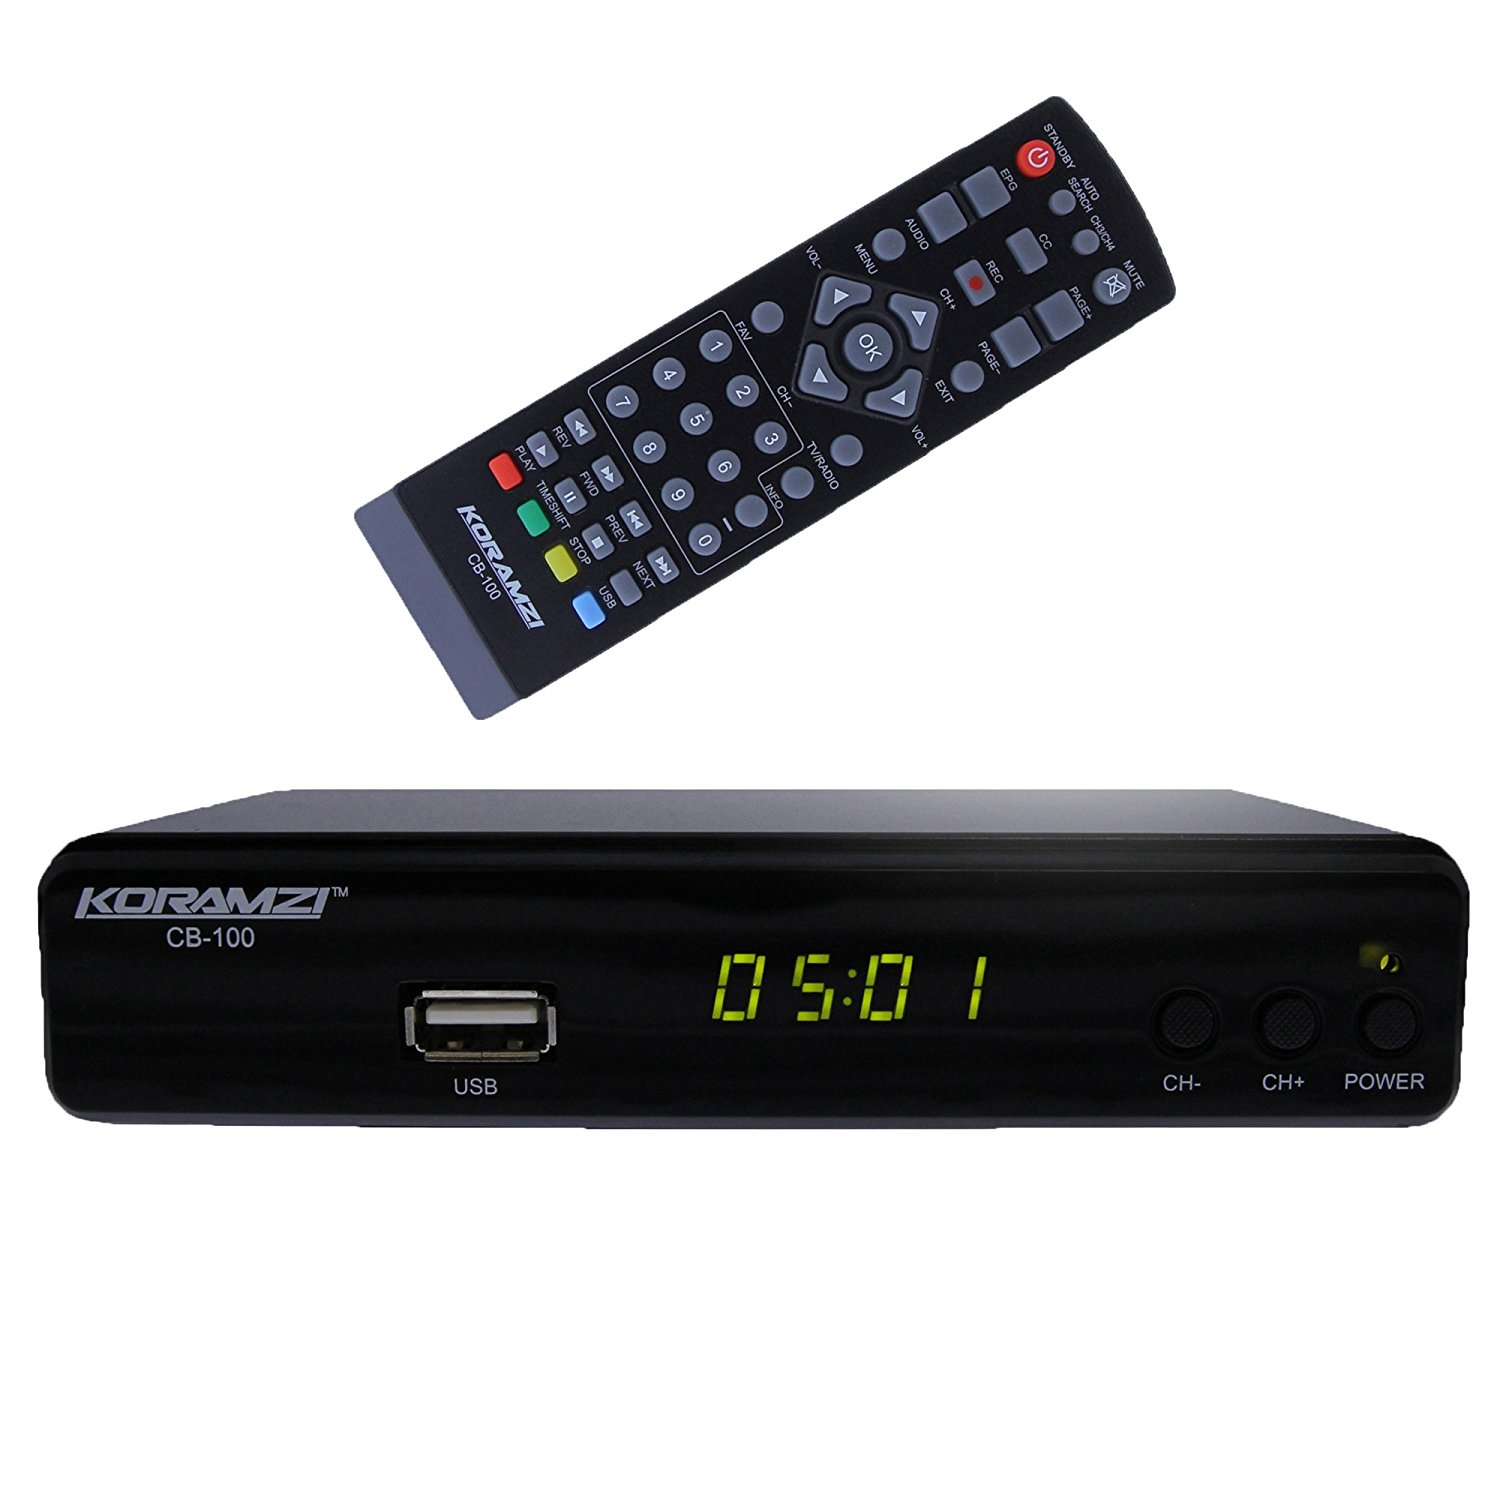 Koramzi CB-100 HDTV Digital TV Converter Box ATSC With USB DVR Recording and Media player PVR Function / HDMI Out / RF In - RF Out / RCA Out / USB Input